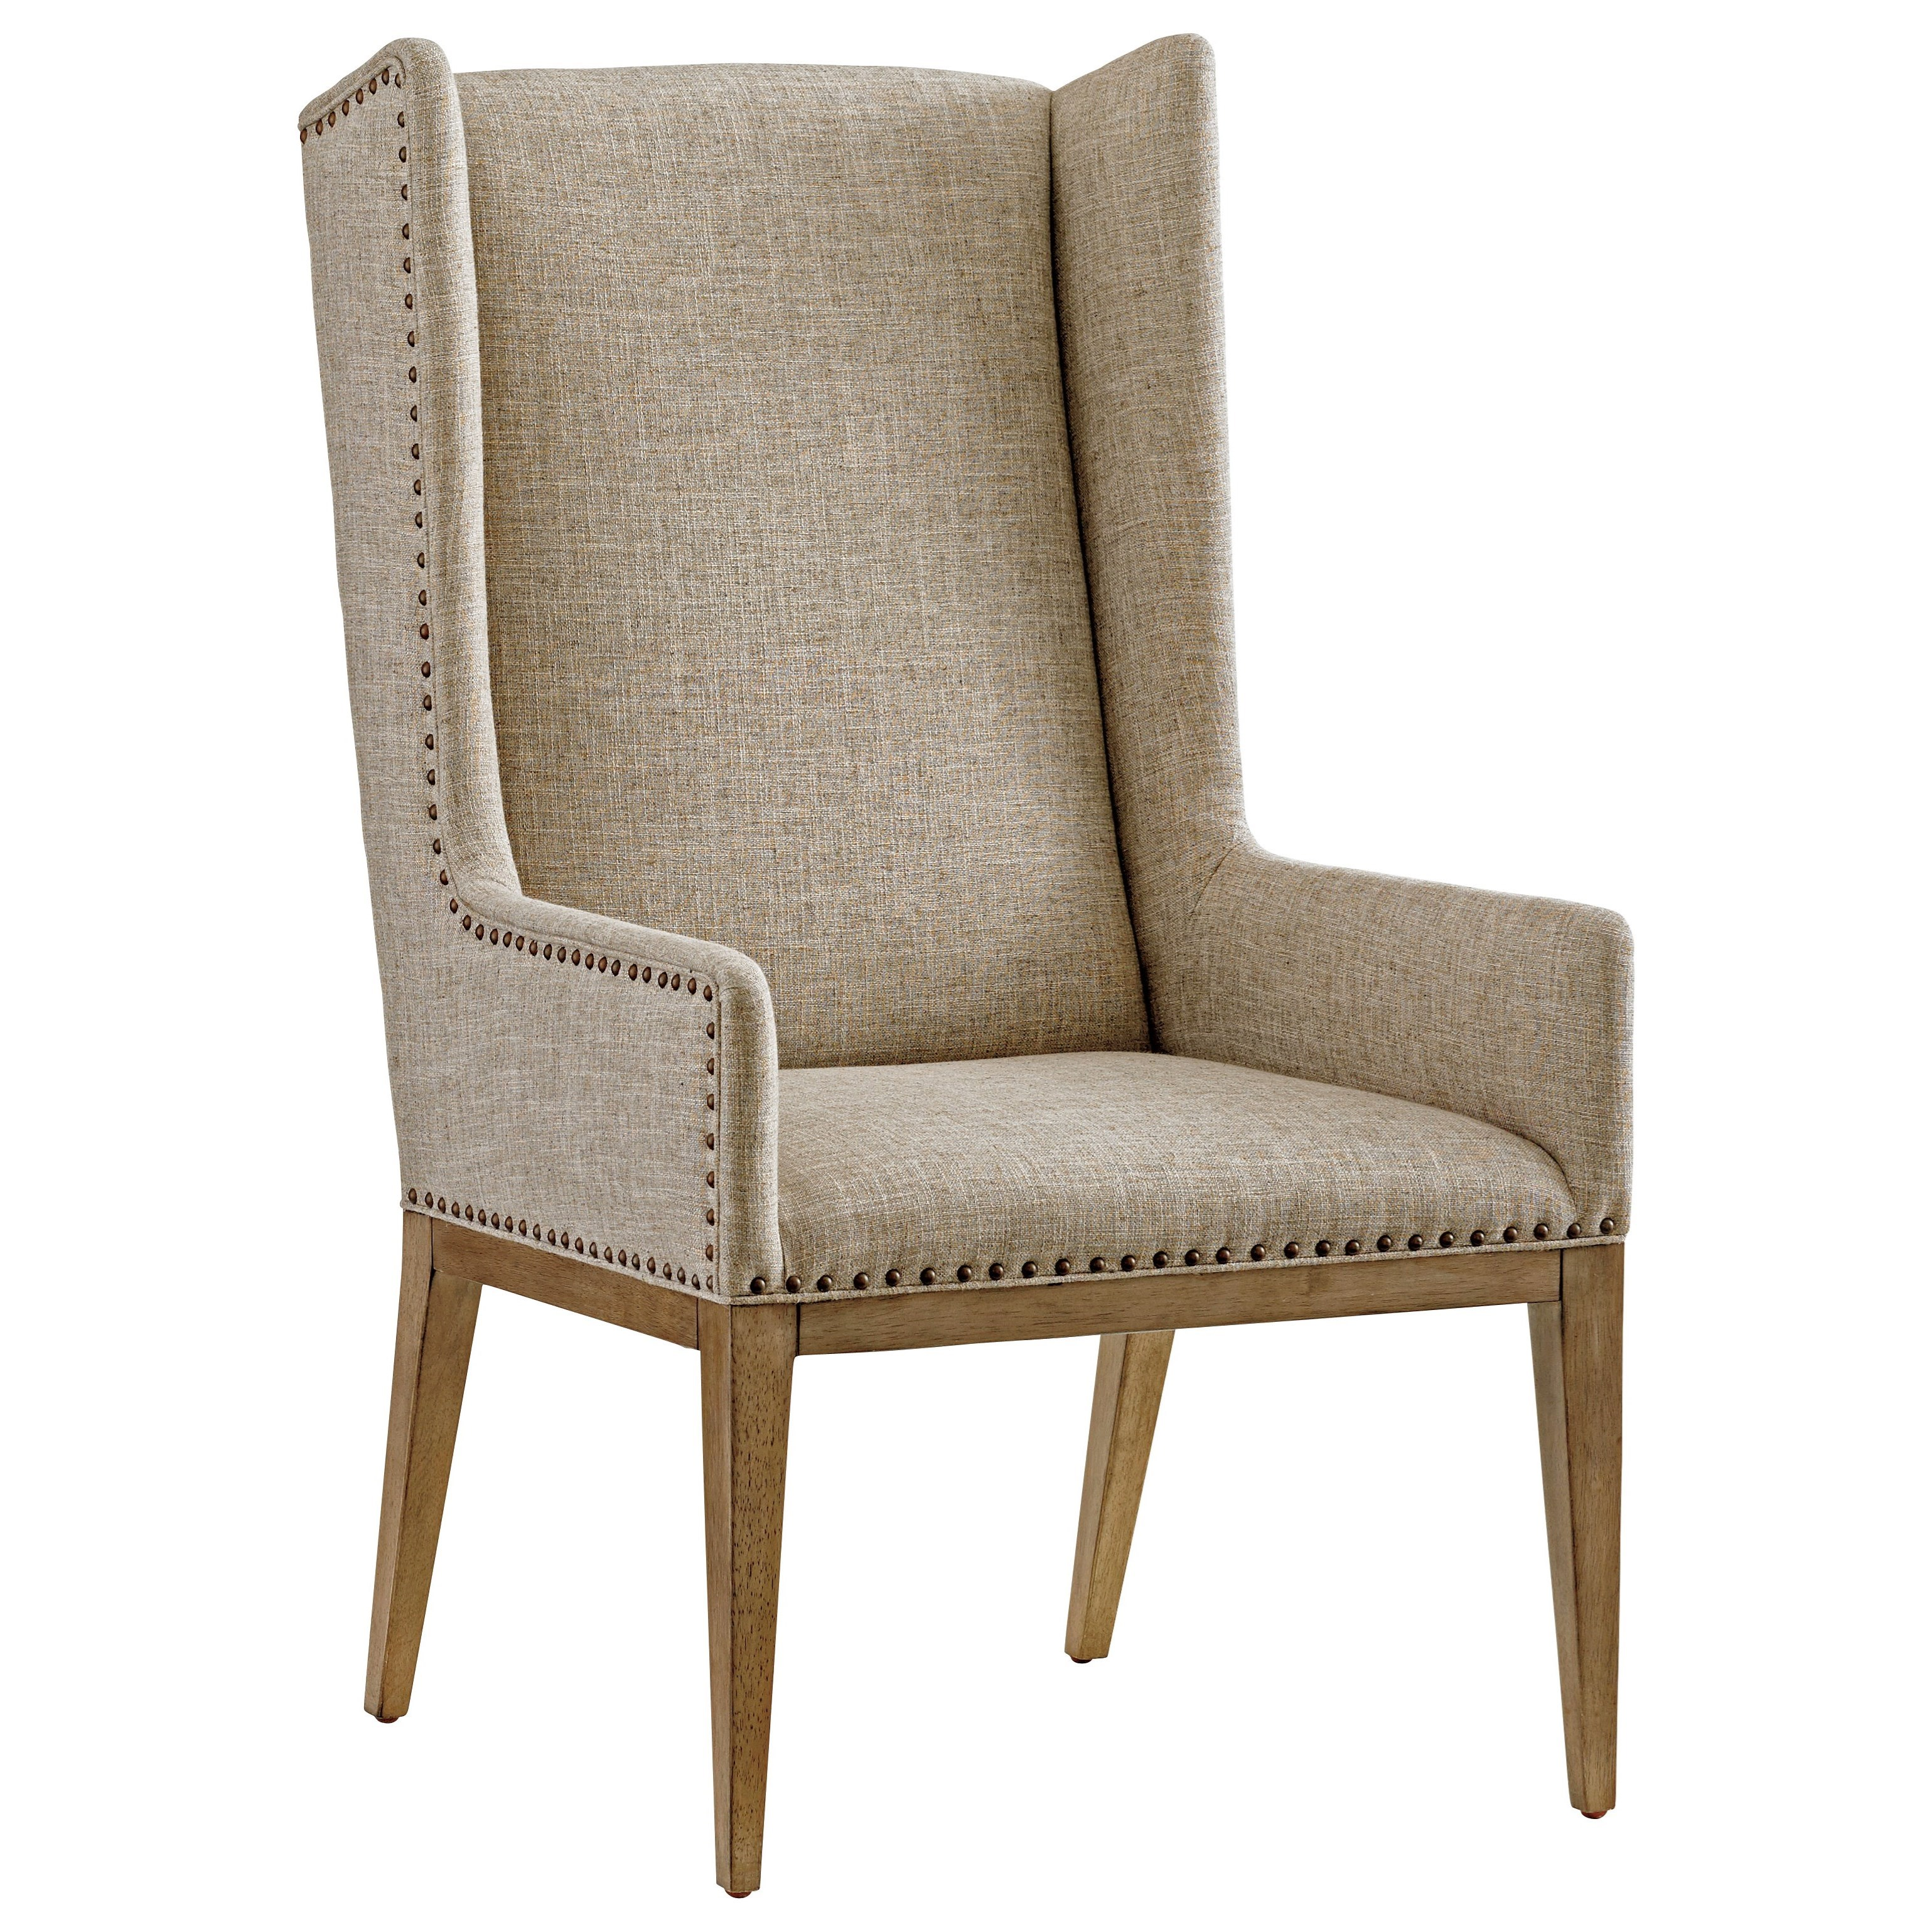 Cypress Point Milton Host Chair by Tommy Bahama Home at Baer's Furniture